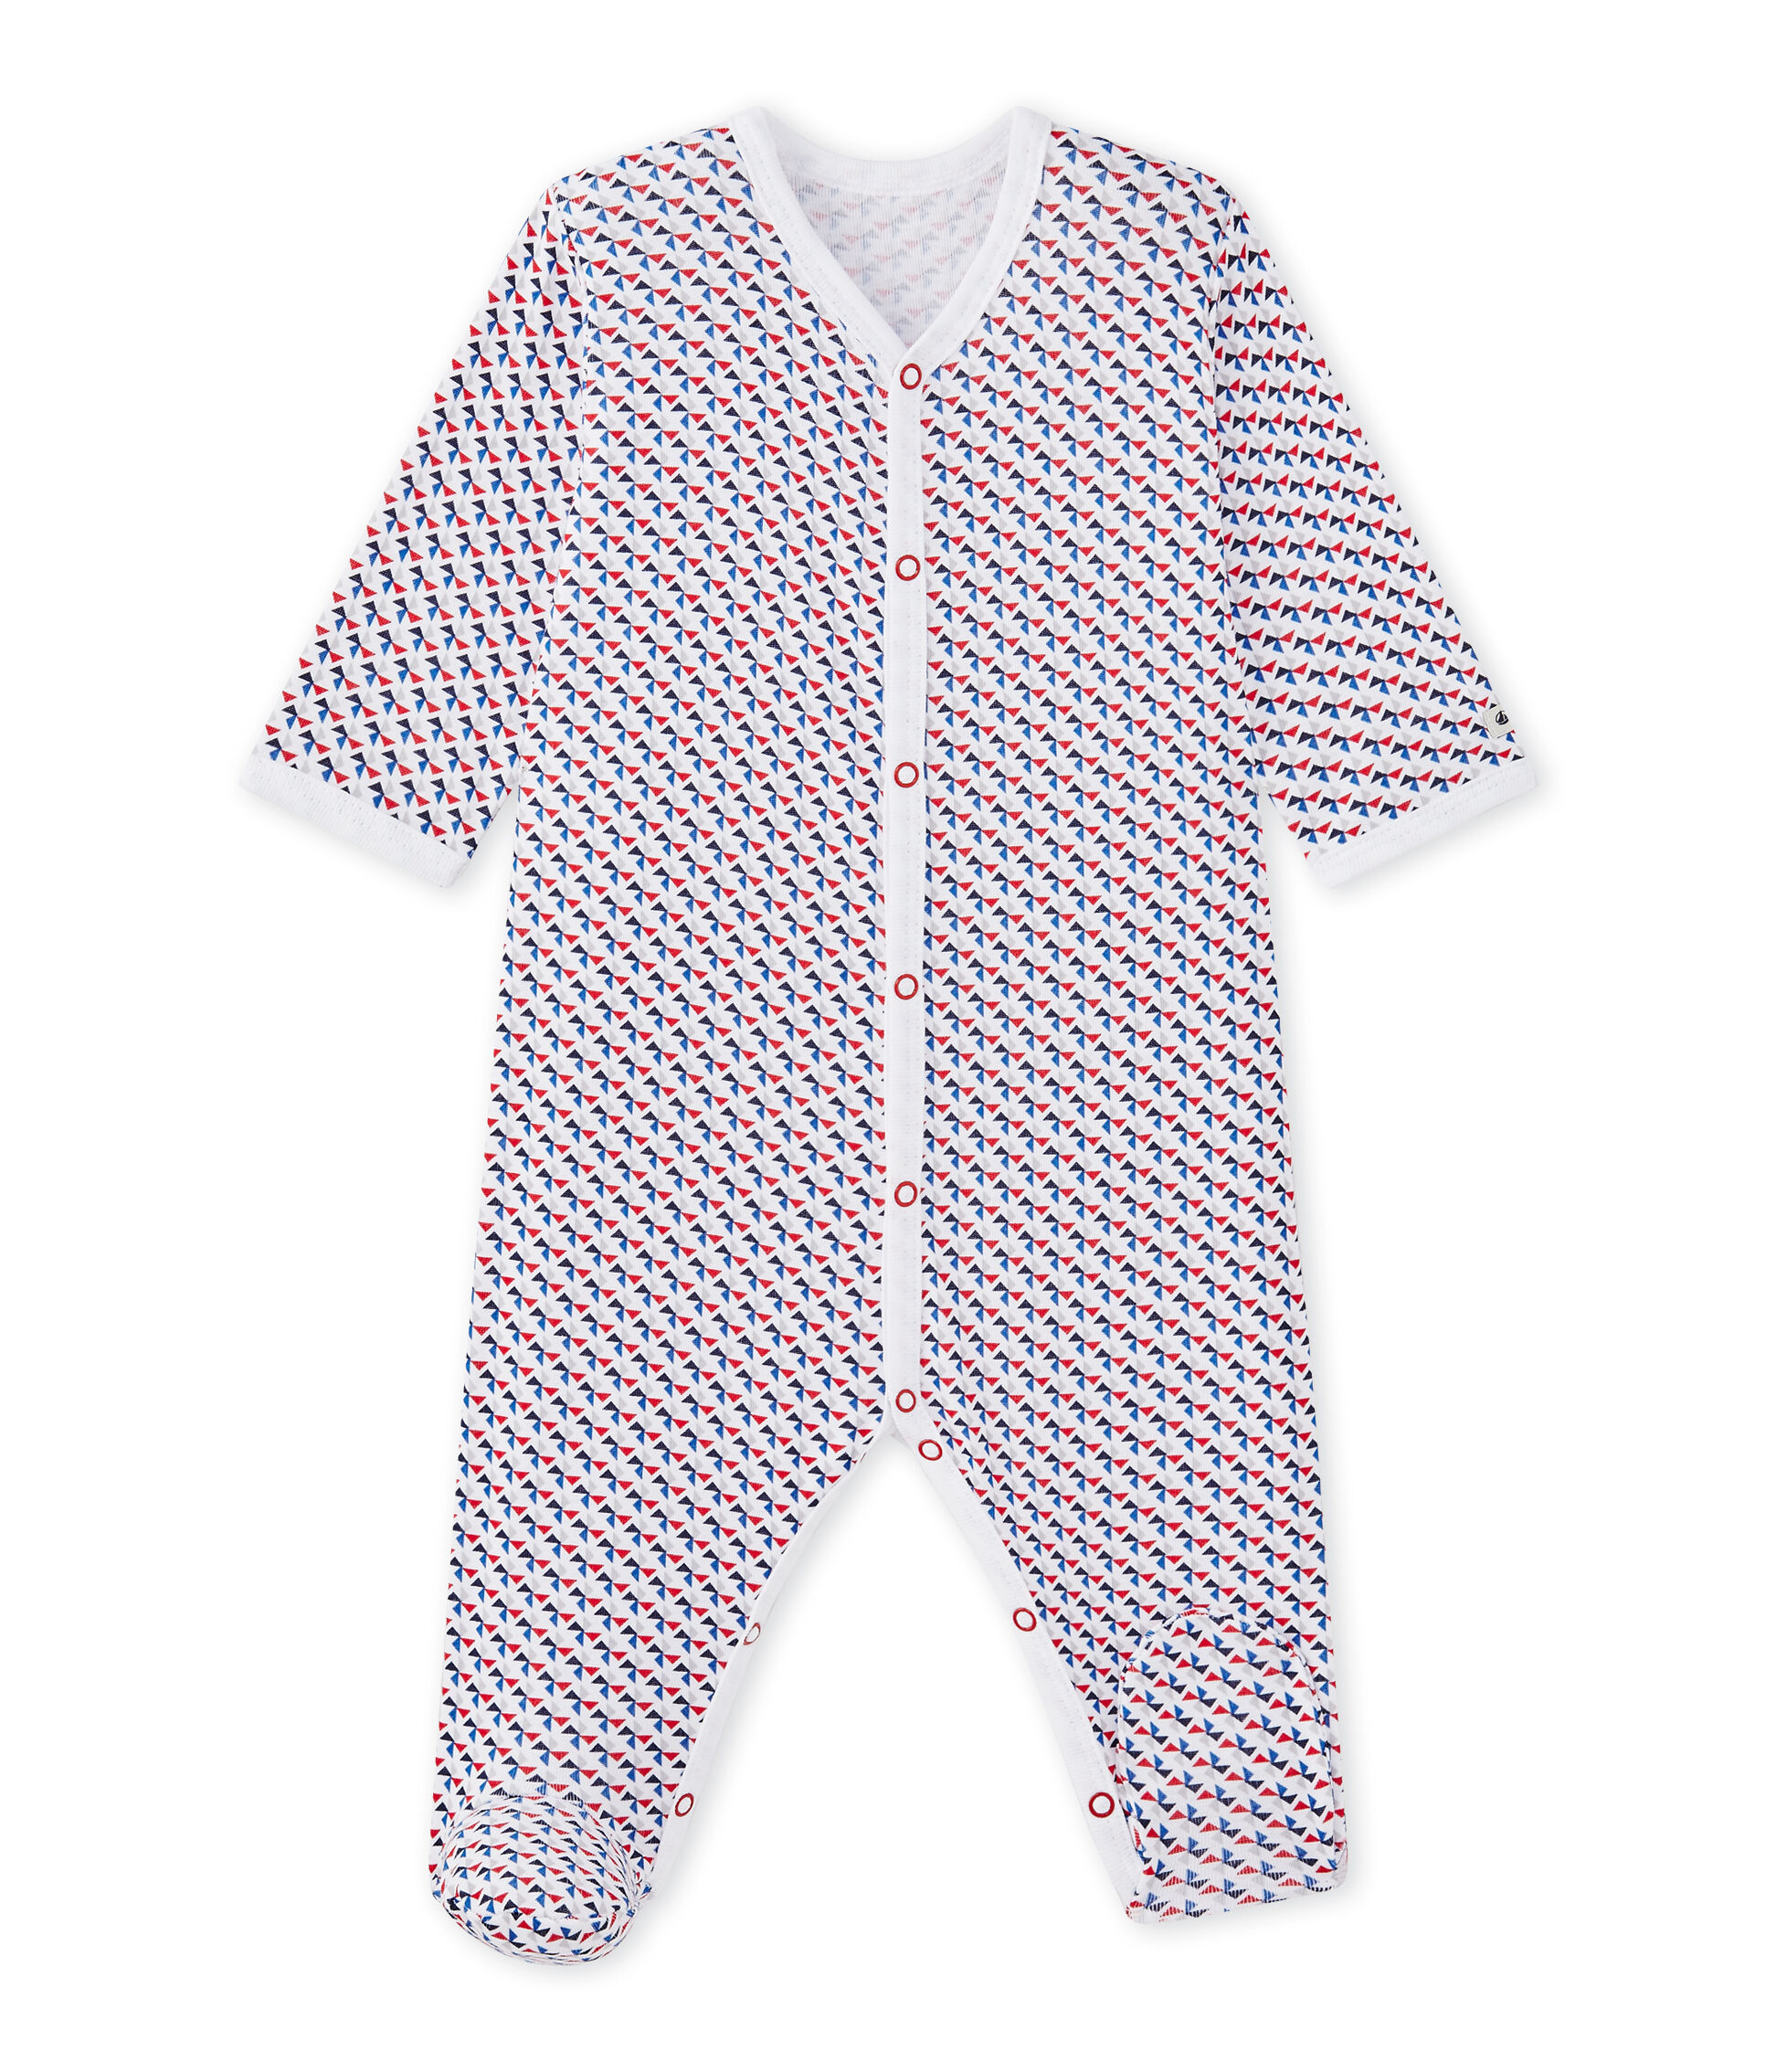 Red Cotton Petit Bateau Sleepsuit Collar 3-6 Months Baby & Toddler Clothing